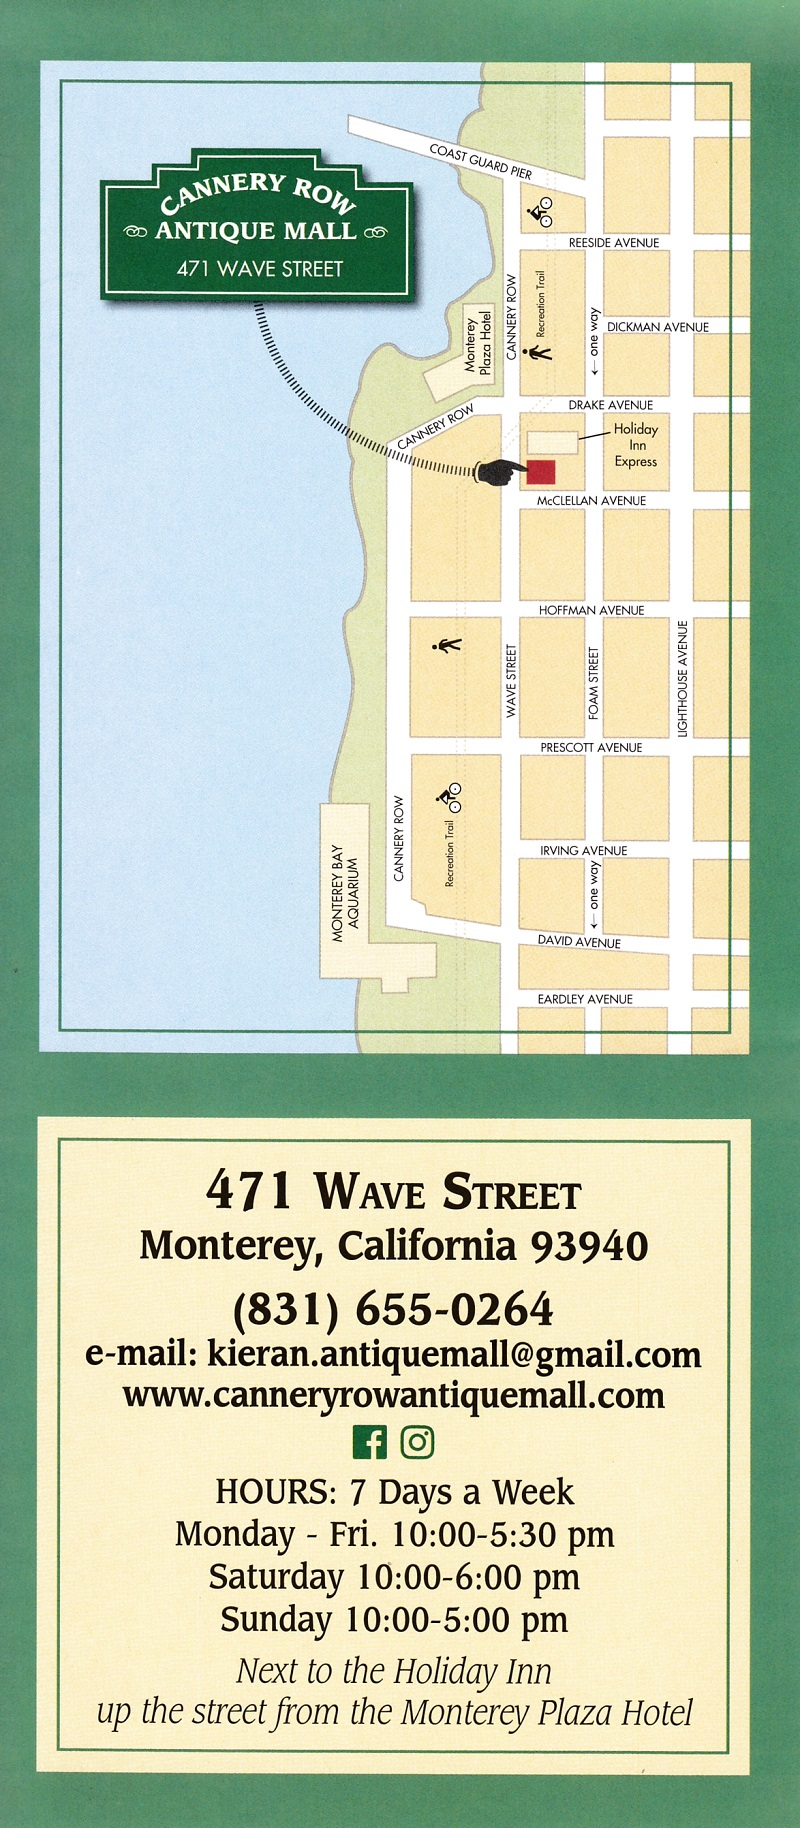 Cannery Row Antique Mall brochure thumbnail